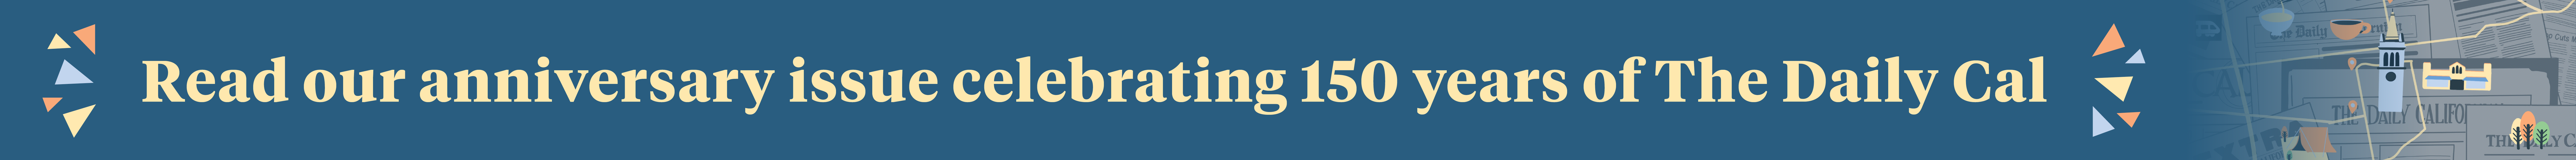 Read our 150th Anniversary issue celebrating 150 years of the Daily Cal